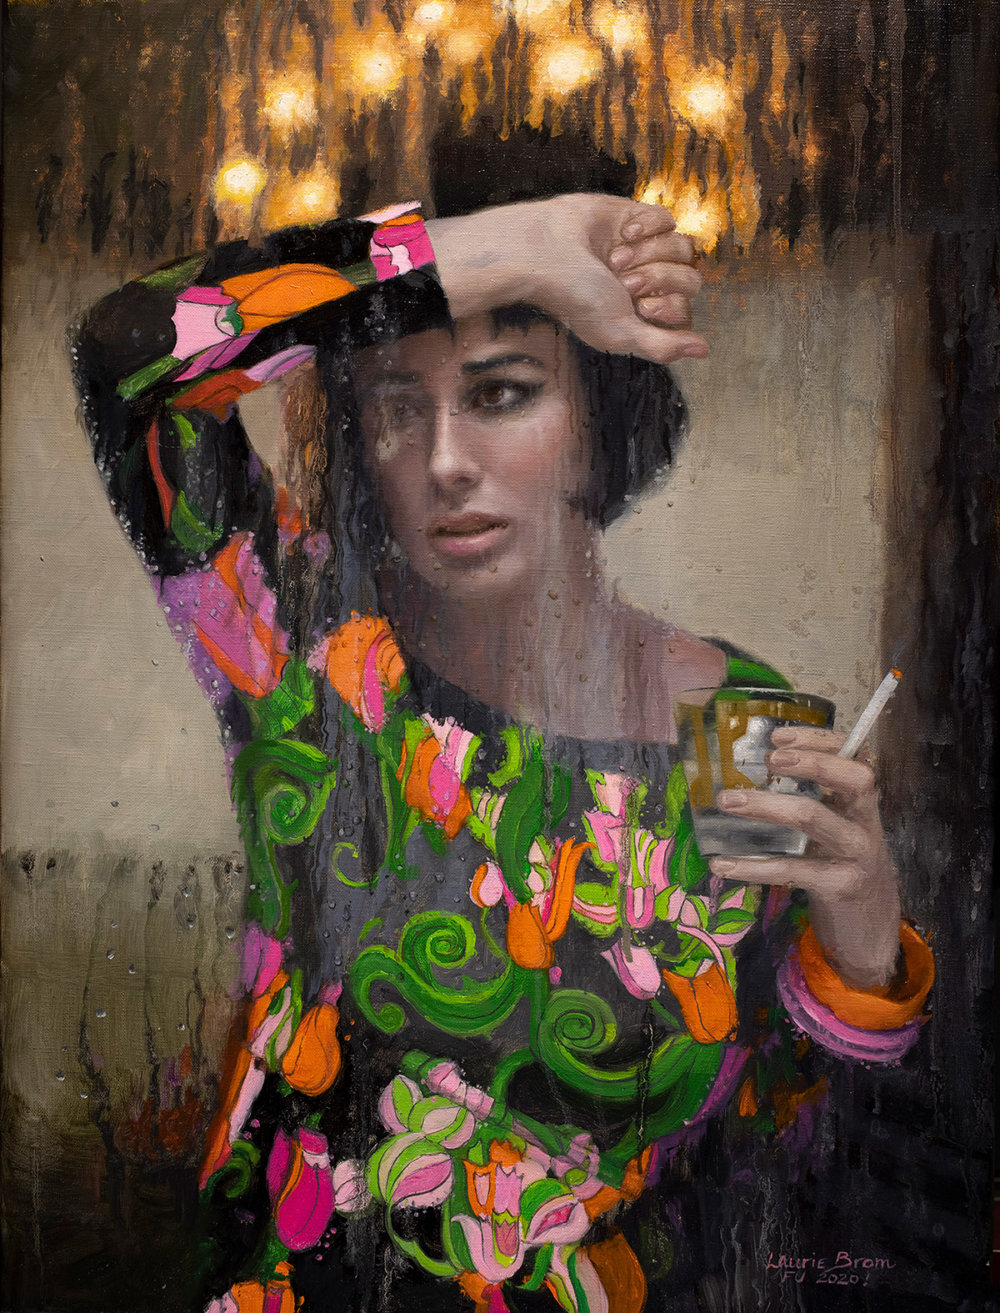 Wonderful Portraits Inspired By Charlestons Folk Tales Painted By Laurie Lee Brom 4